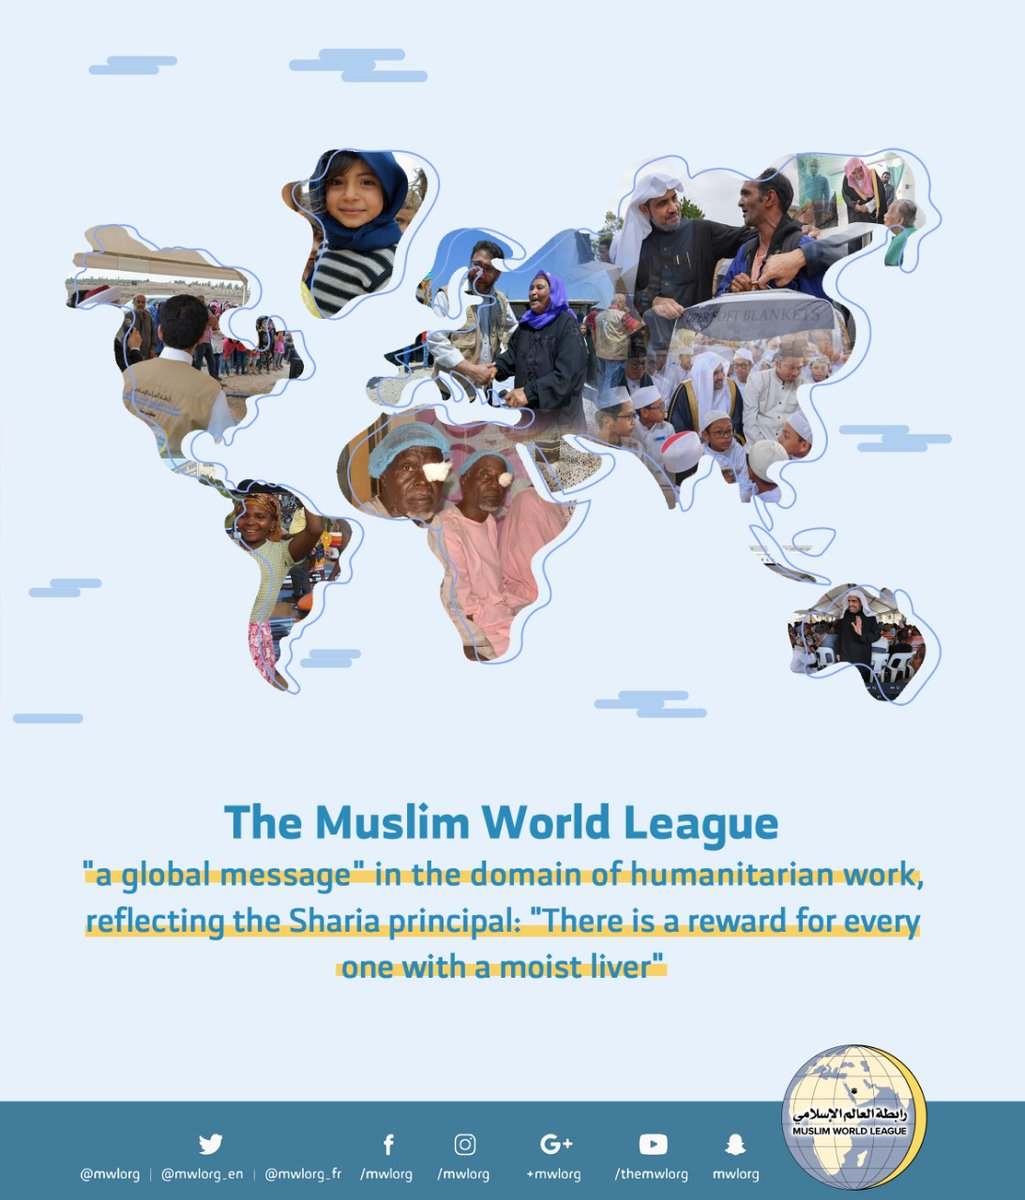 "The humanitarian efforts of the MWL are global & unconditional. Its Sharia Logo is: (There is a reward for every act of kindness to a human soul). The MWL provides relief work based on ""Islamic values"" that brings hearts closer & promote love & harmony."